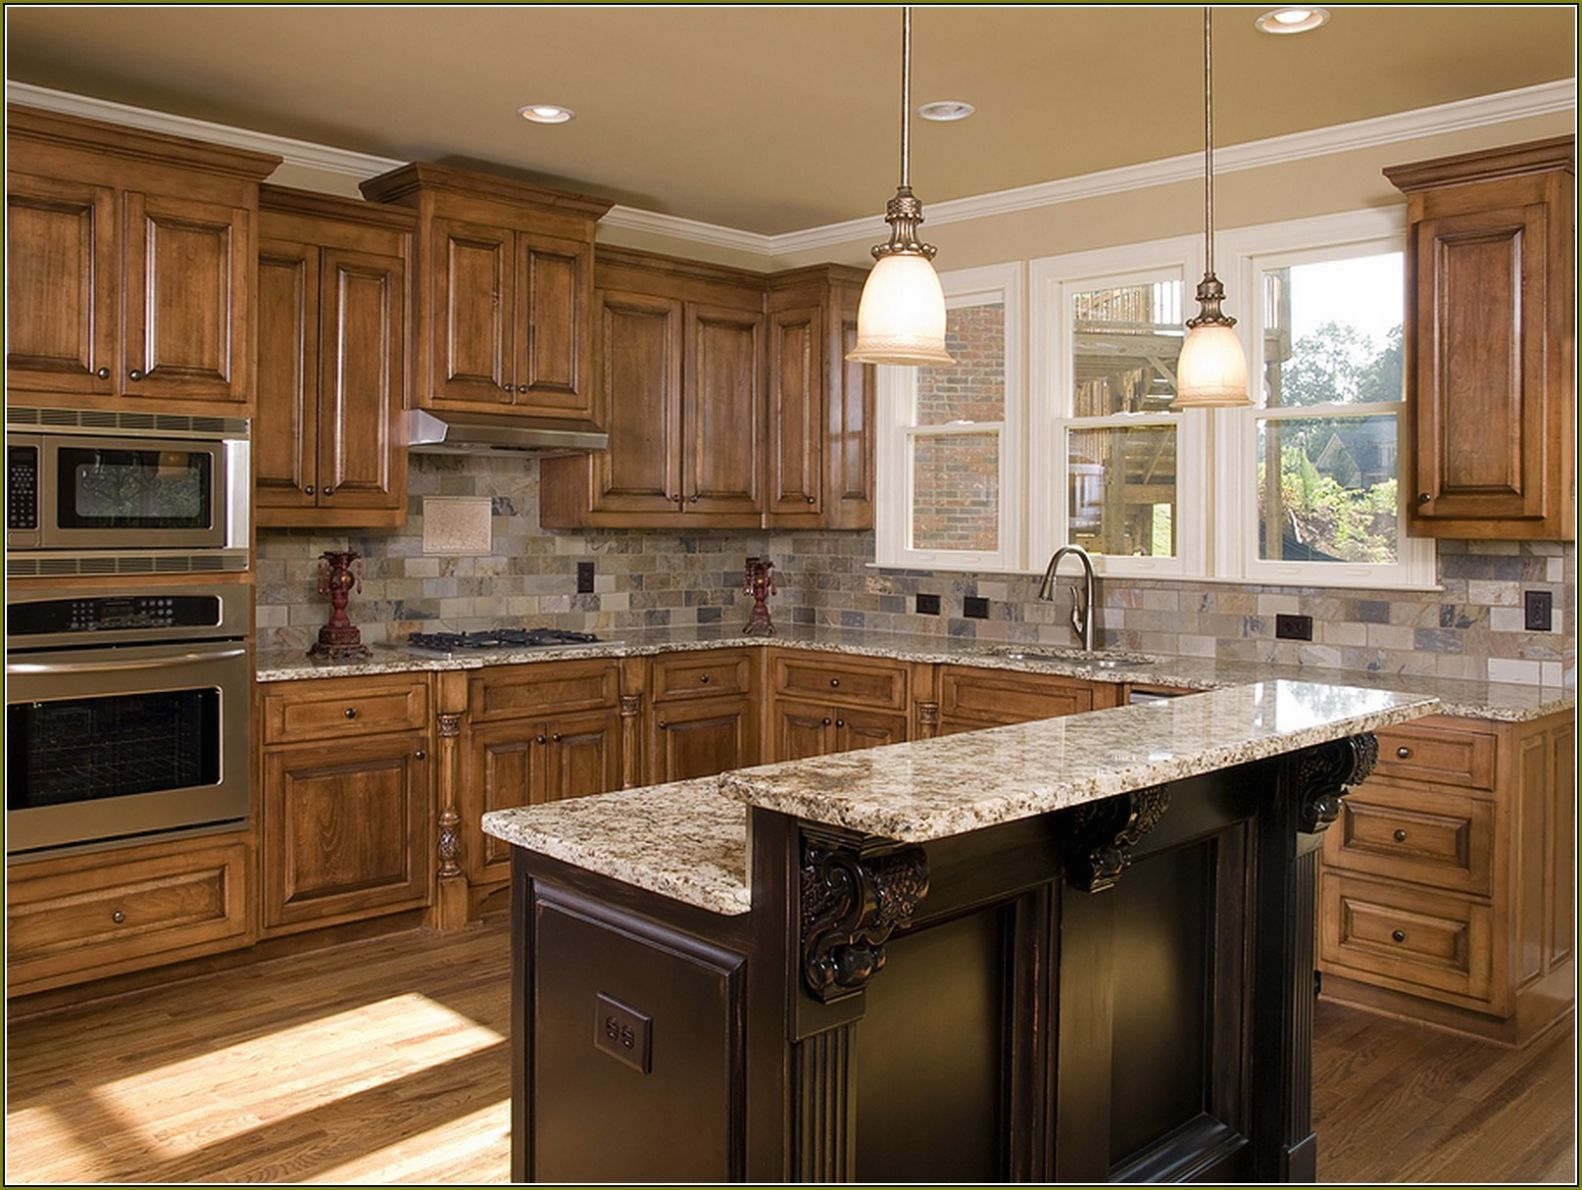 Menards Kitchen Cabinets Appealing Menards Cabinets Applied To Your Residence Kitchen Design Small Kitchen Remodel Layout Kitchen Remodel Small